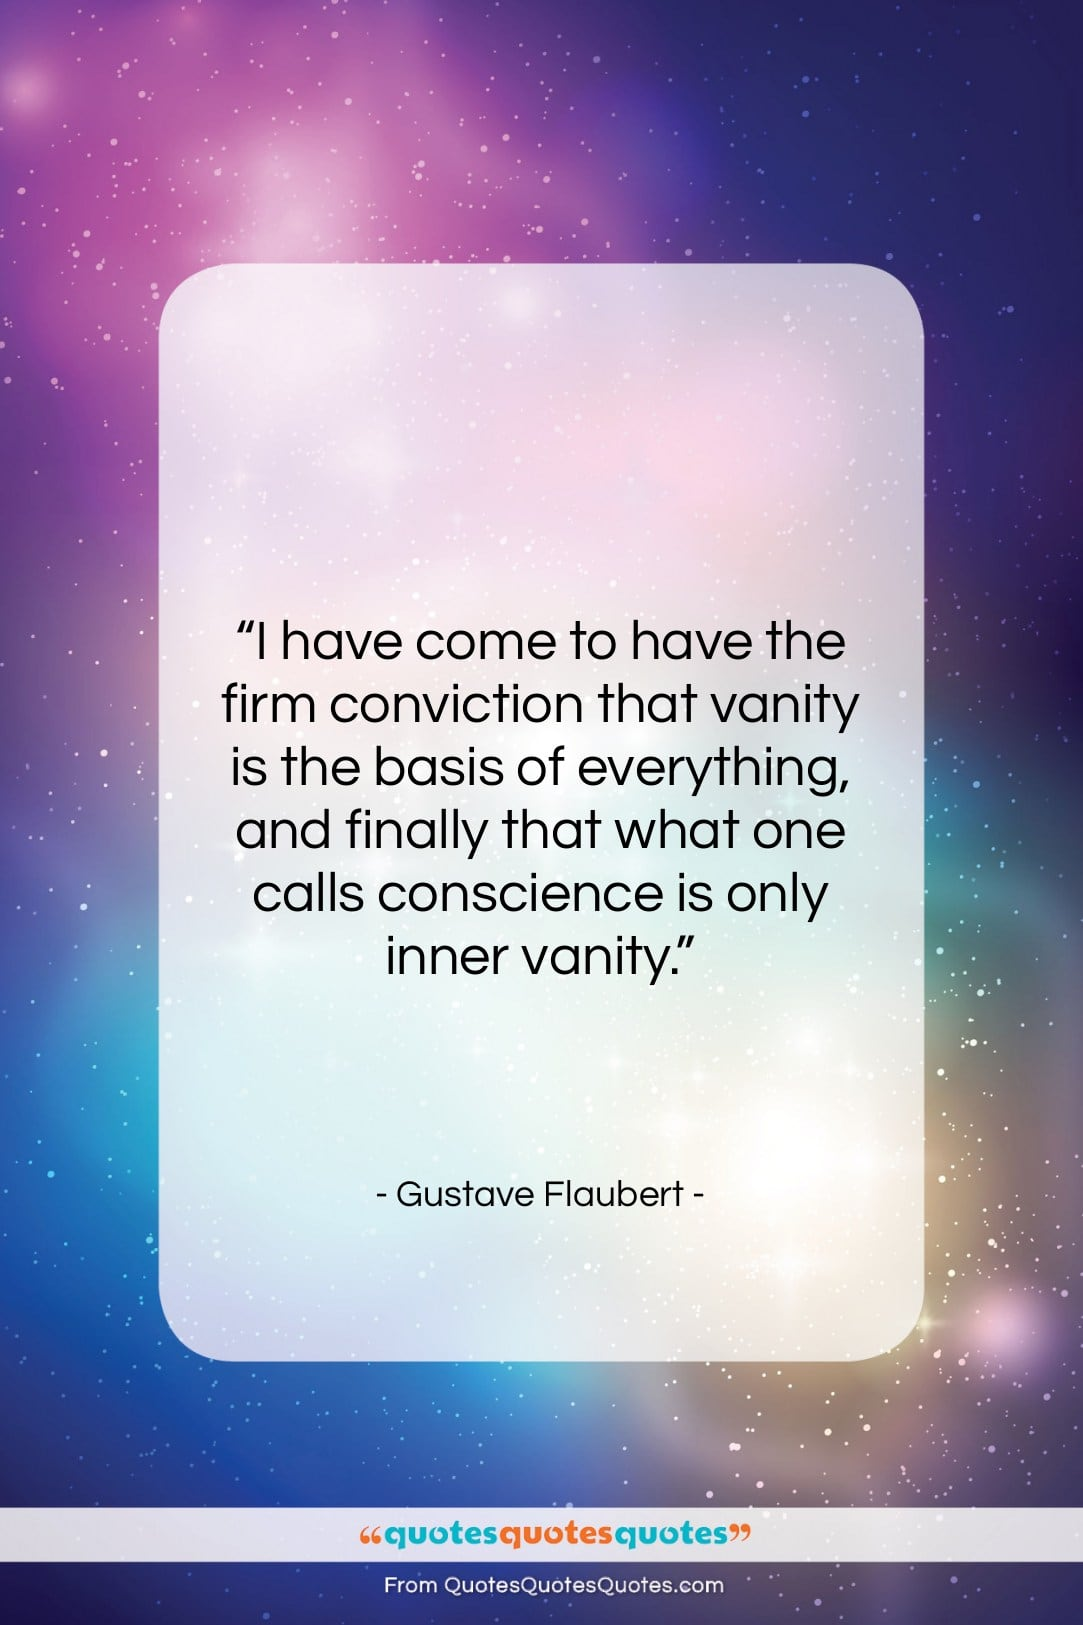 """Gustave Flaubert quote: """"I have come to have the firm…""""- at QuotesQuotesQuotes.com"""